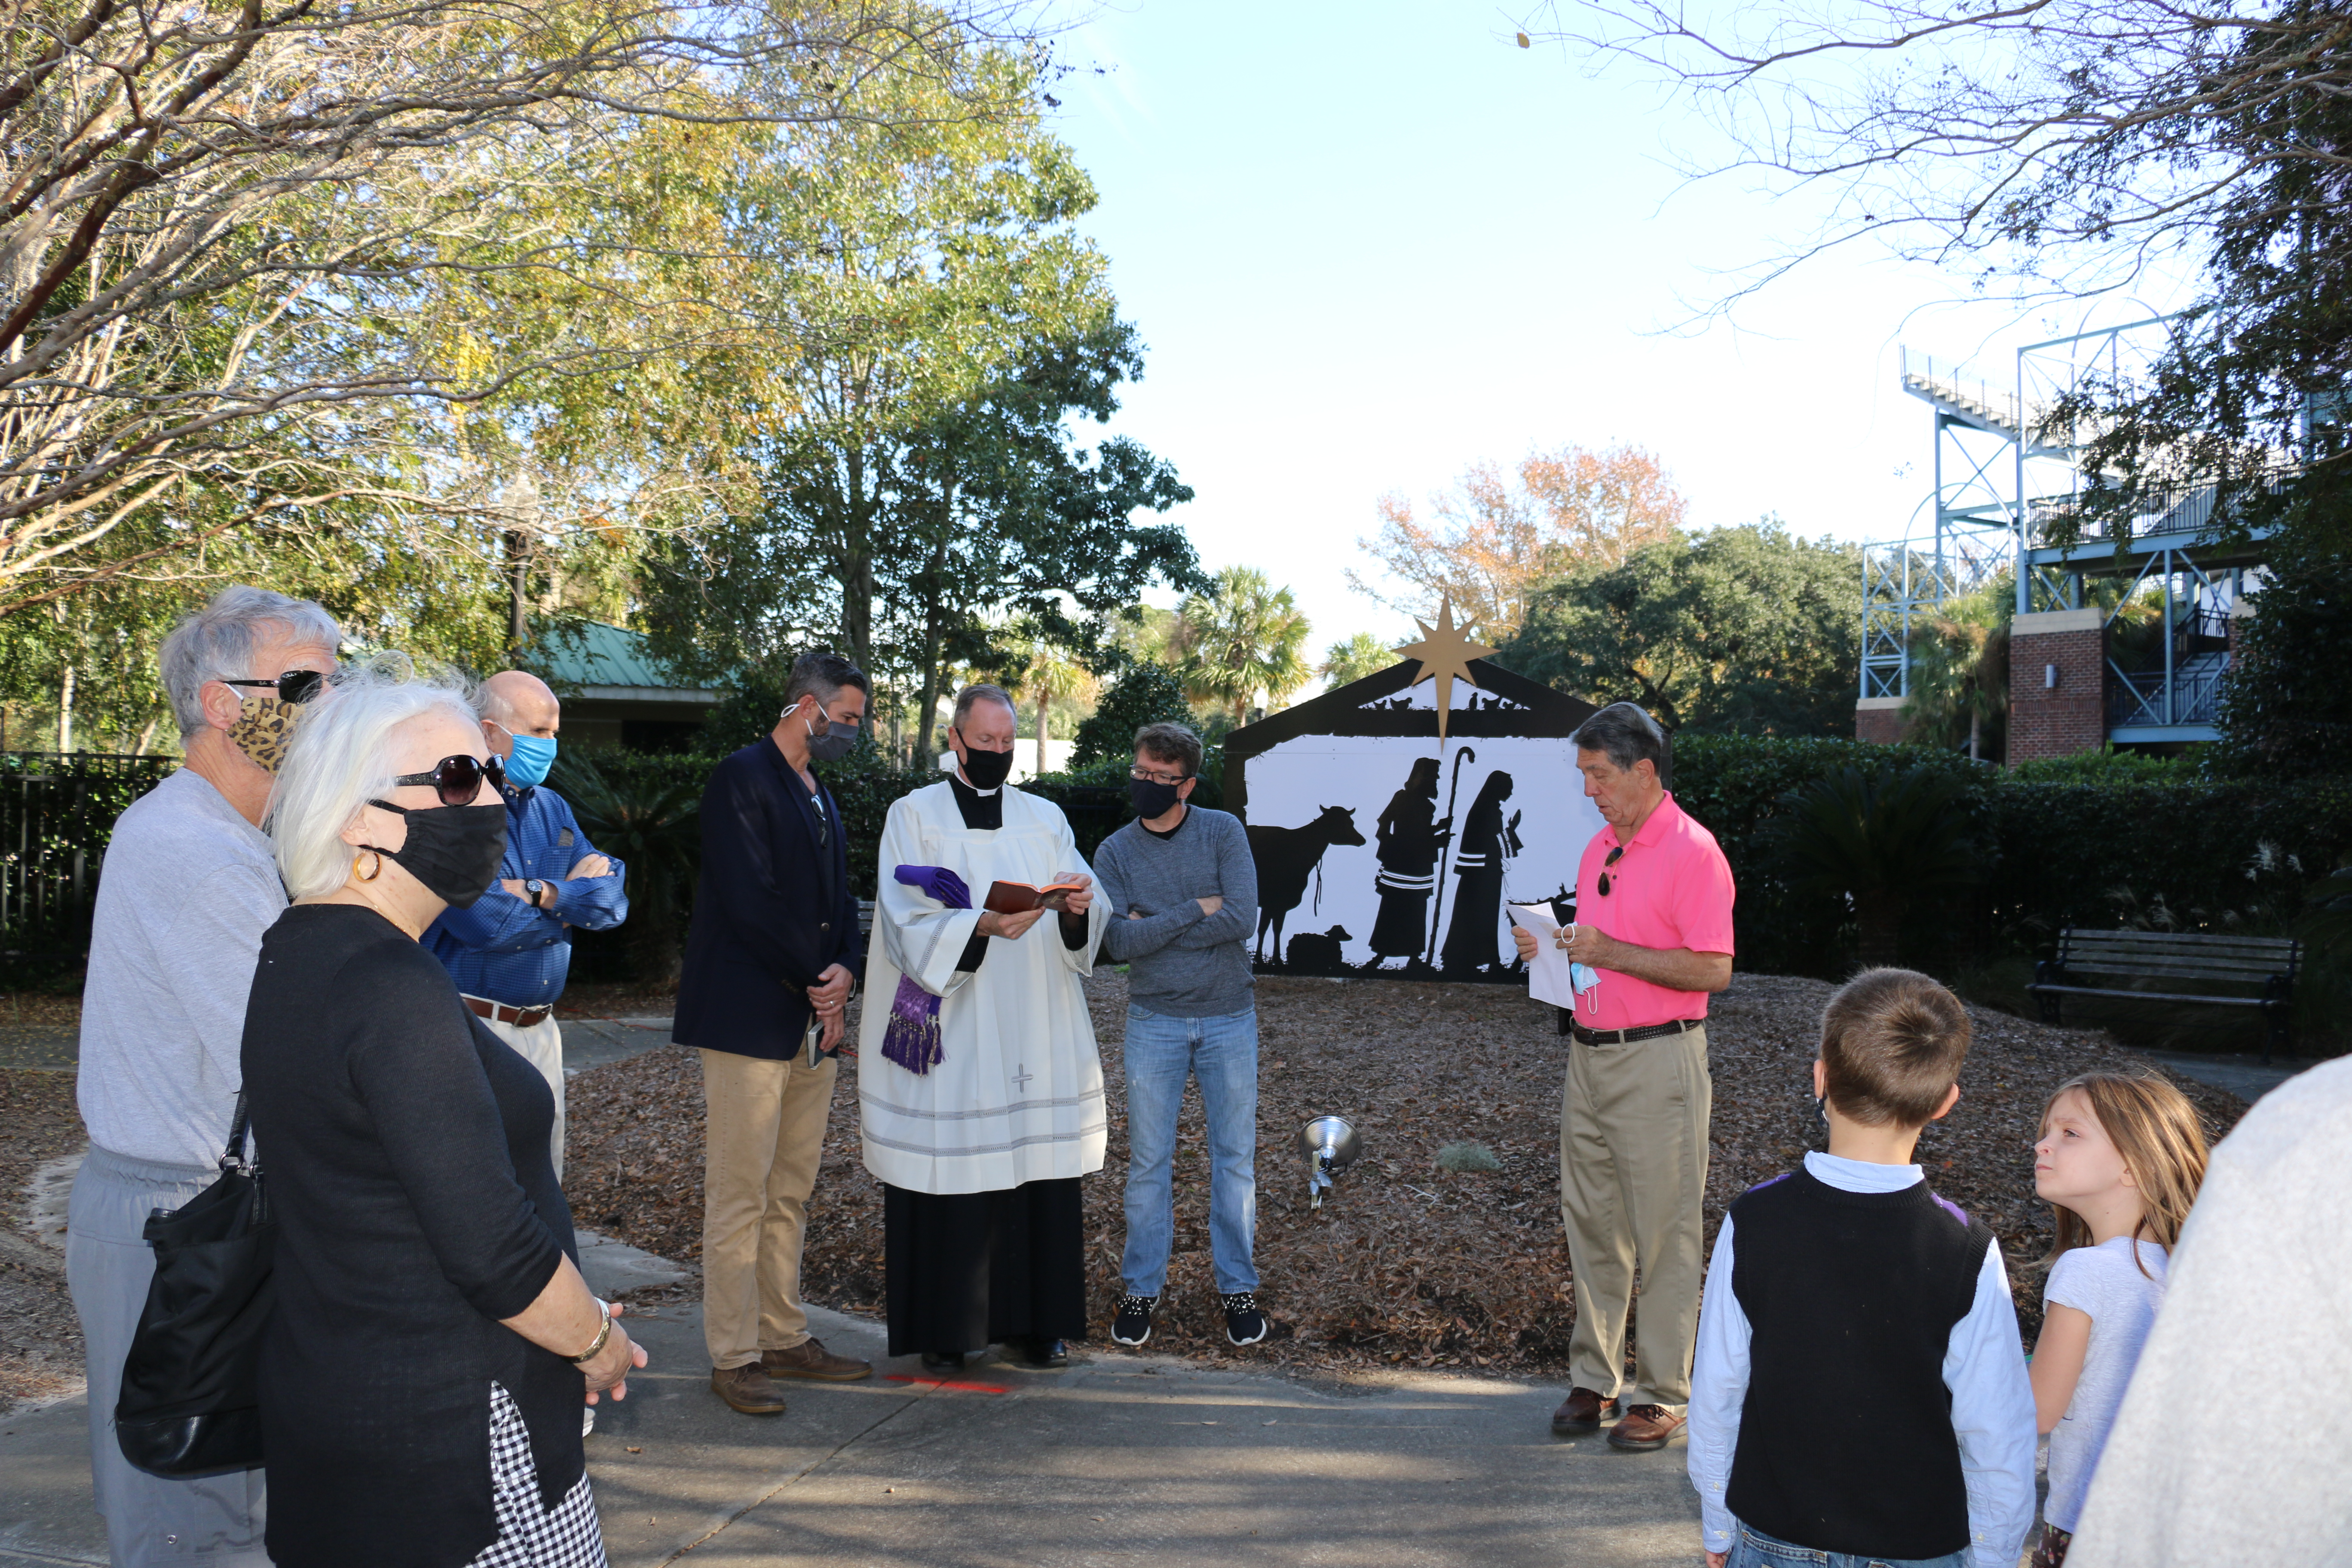 On Dec. 12, pastors from island churches shared scripture, prayer, and words of hope at the Blessing of the Nativity. The new nativity display was spear-headed by Frank Walsh and built by Johnston Signs. The nativity is on display in front of the Volvo Car Stadium. Pictured are: Pastor Paul Sorensen of One Fellowship, Father West of St. Clare of Assisi, Pastor Freemyer of Providence Church, and Frank Walsh.